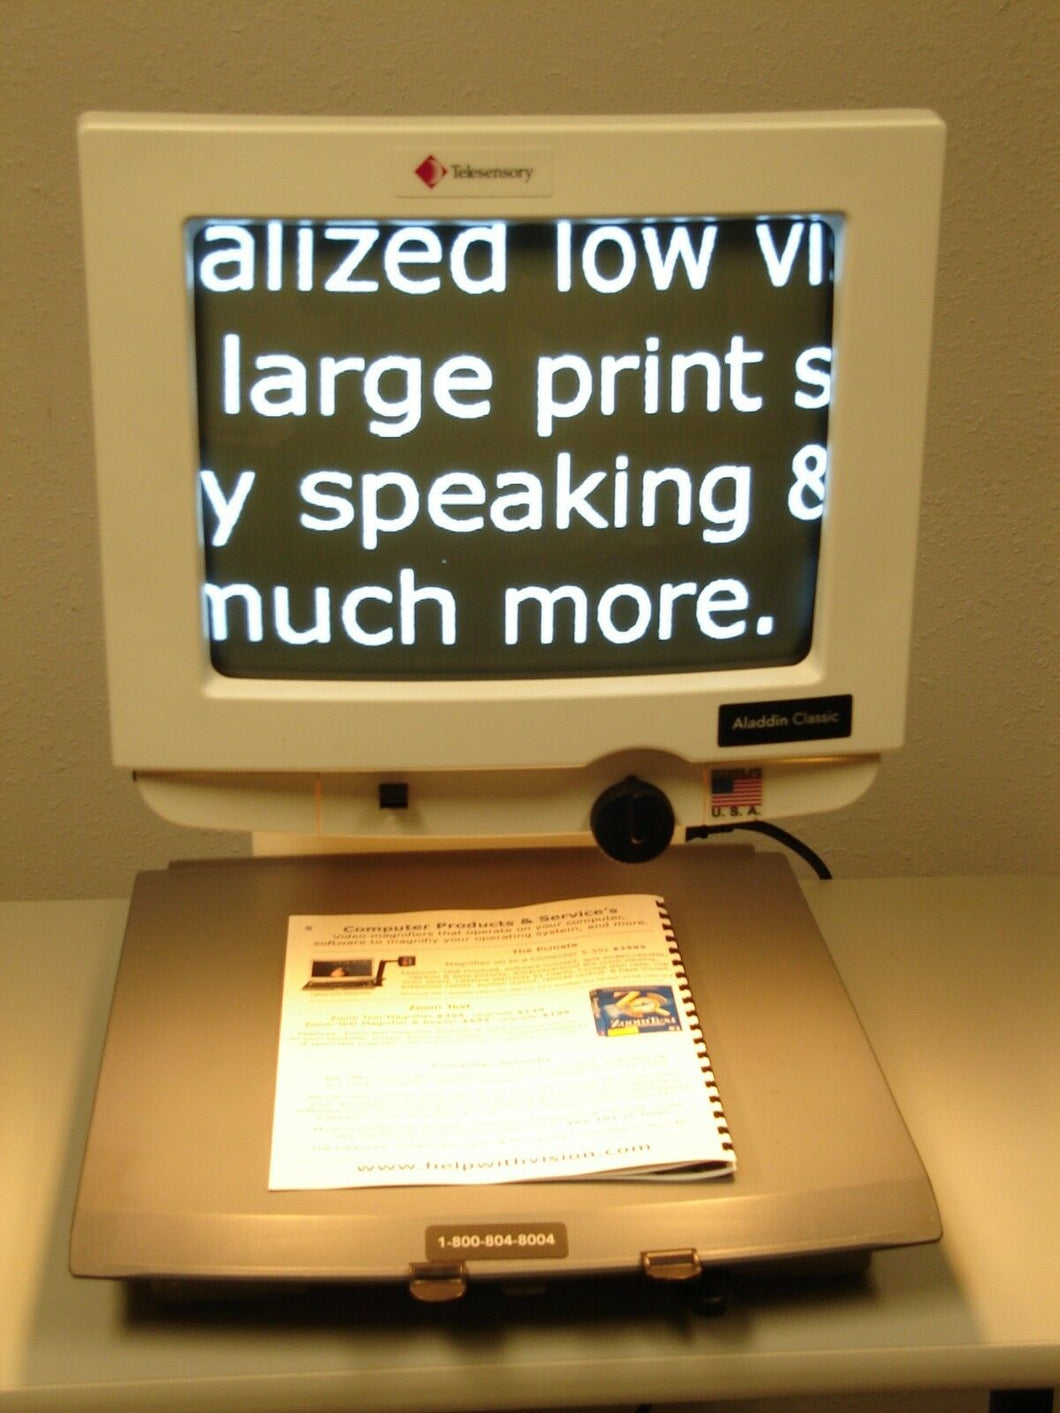 Telesensory B/W Aladdin Classic Low Vision Video Magnifier 25X EASY REFURBISHED